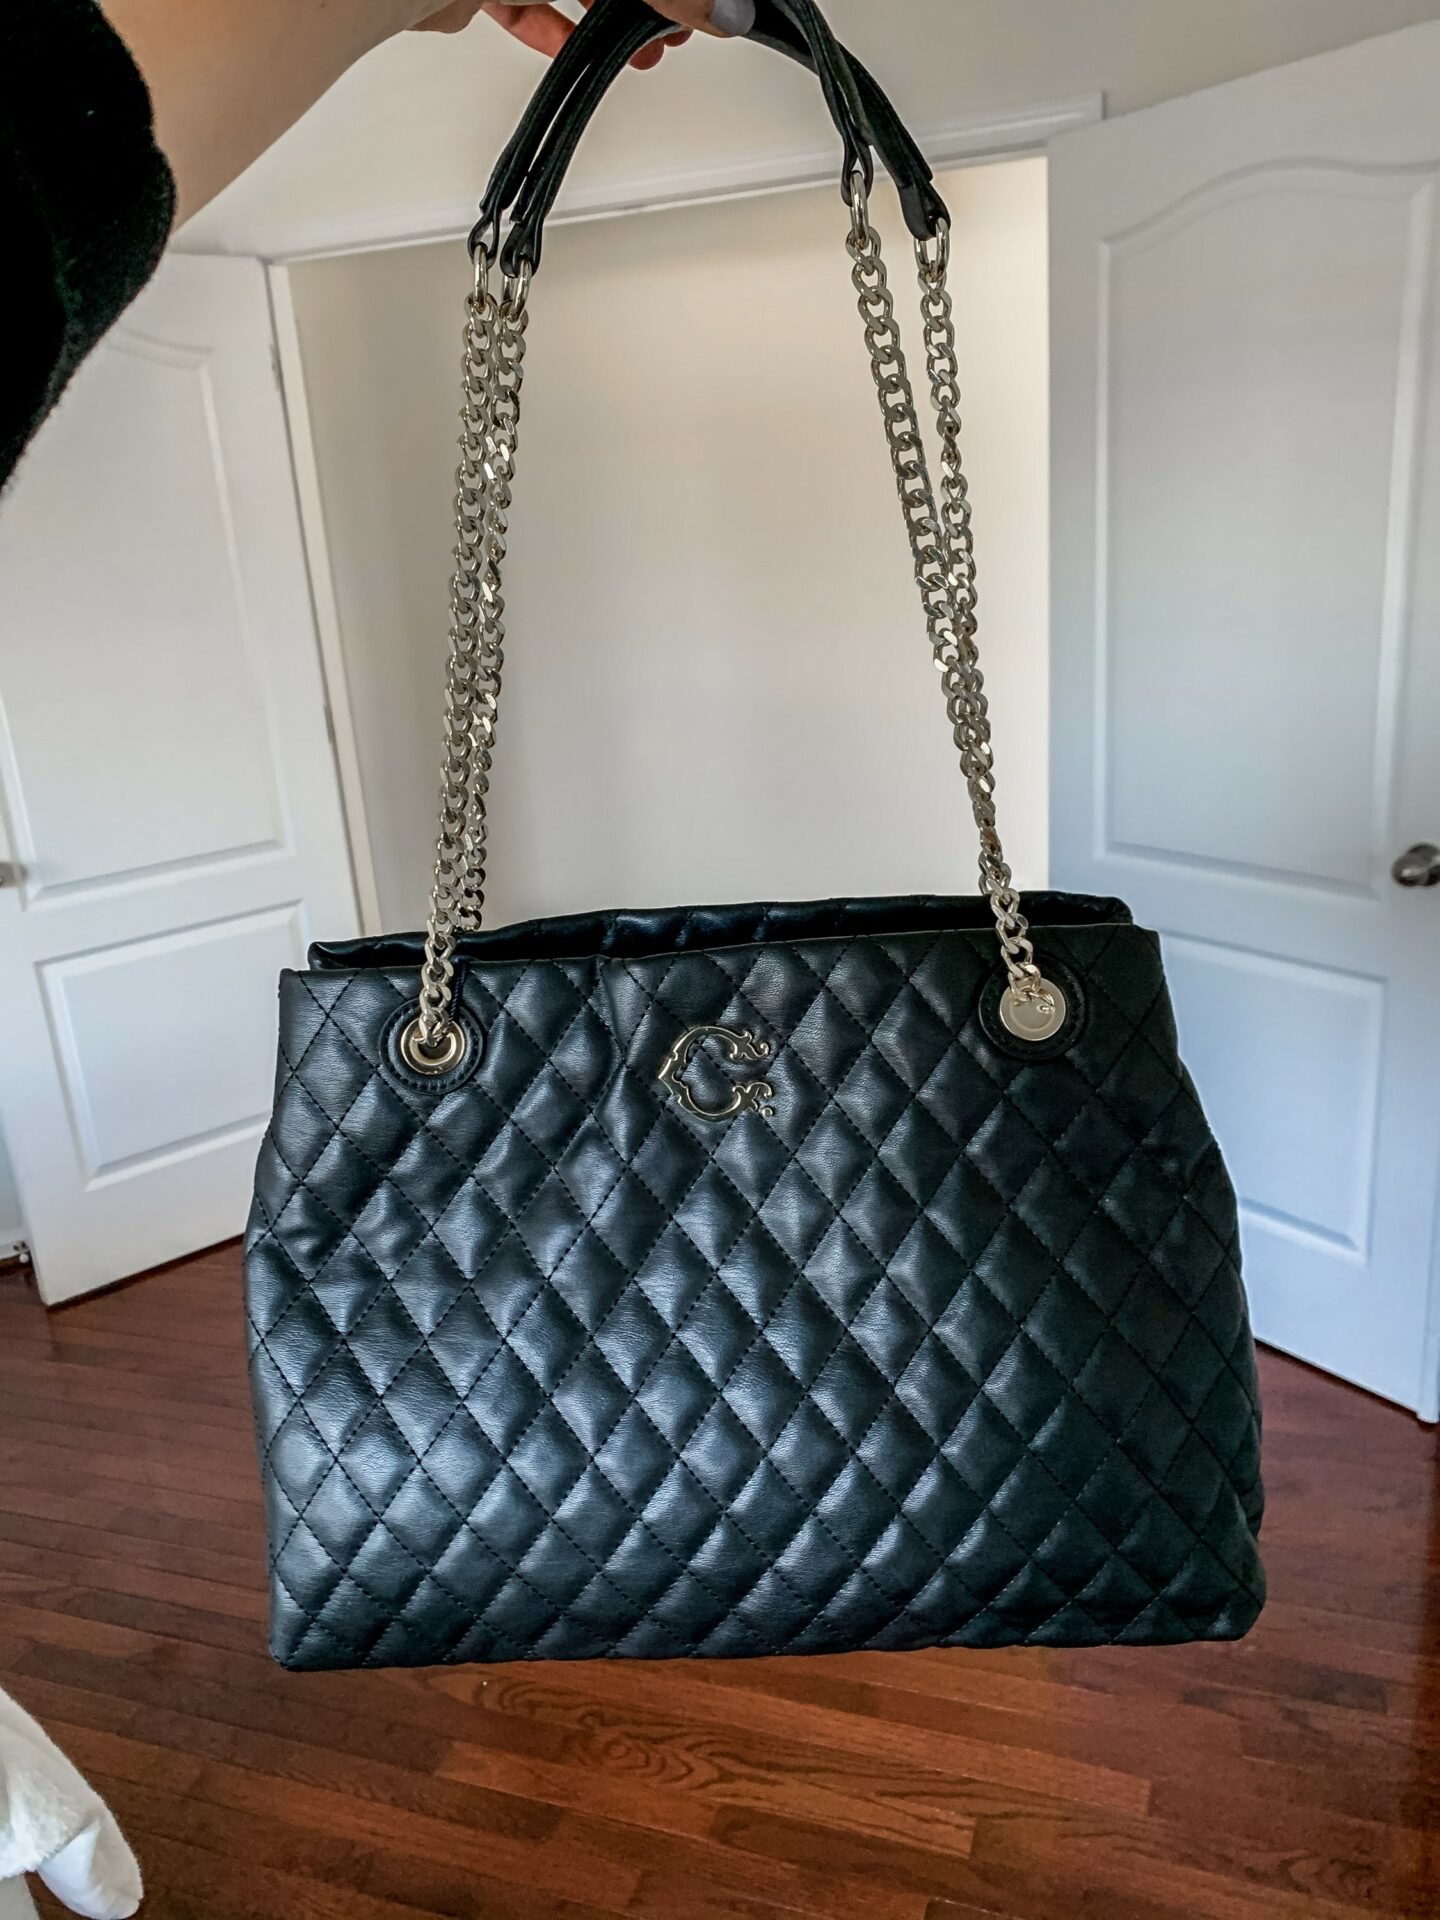 Black Chanel bag dupe from Walmart - on Coming Up Roses